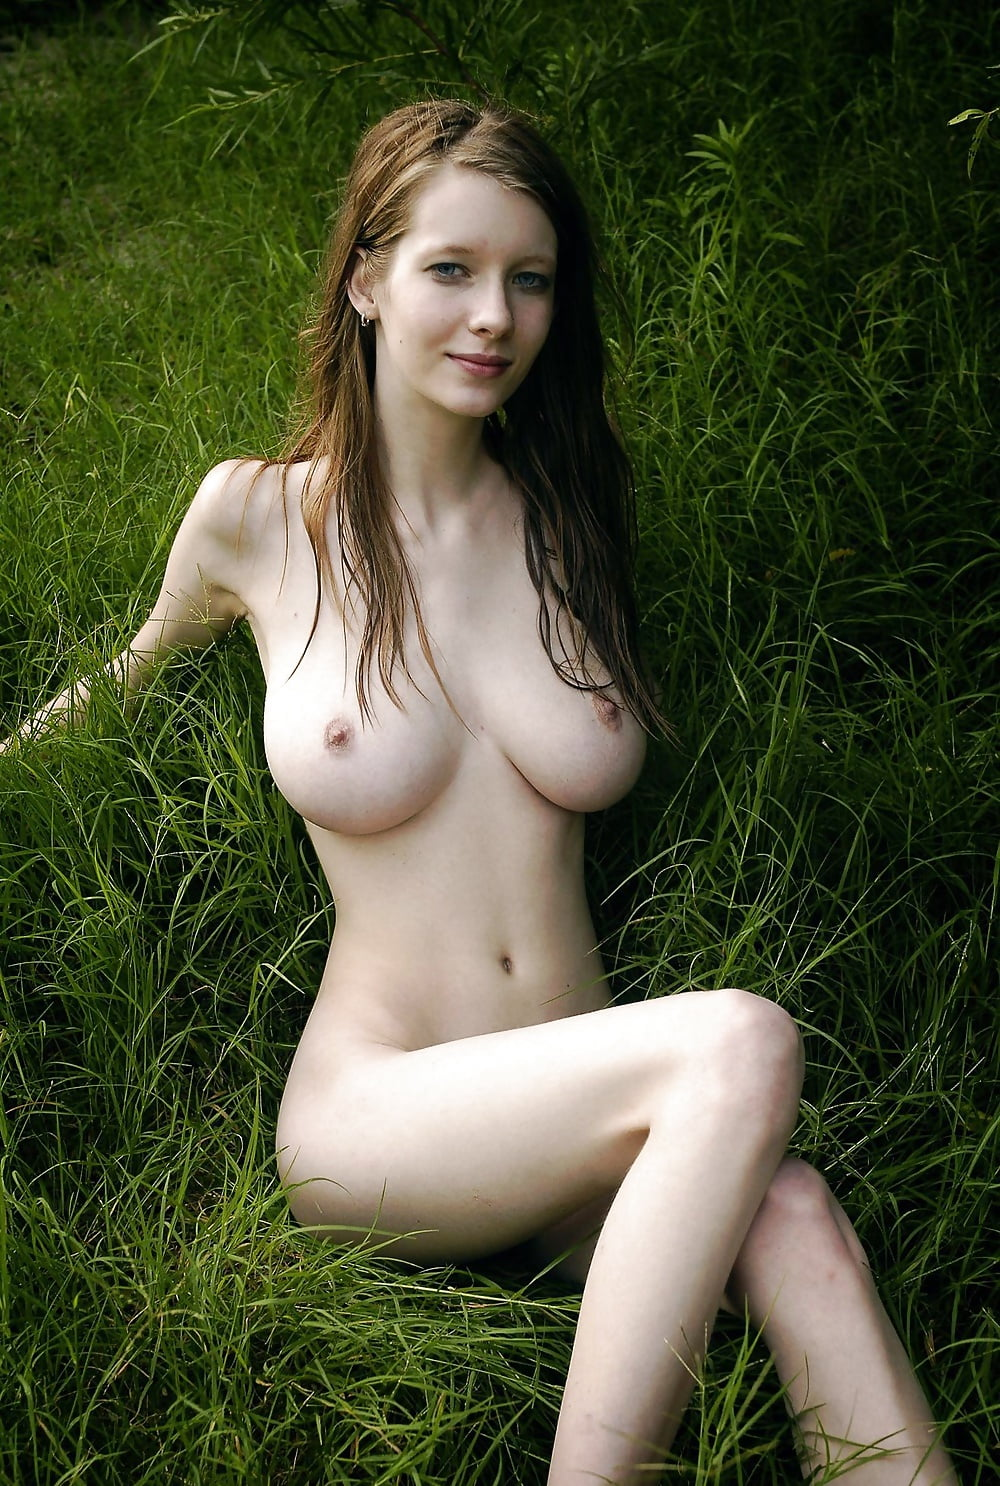 skinny-girls-with-big-nice-boobs